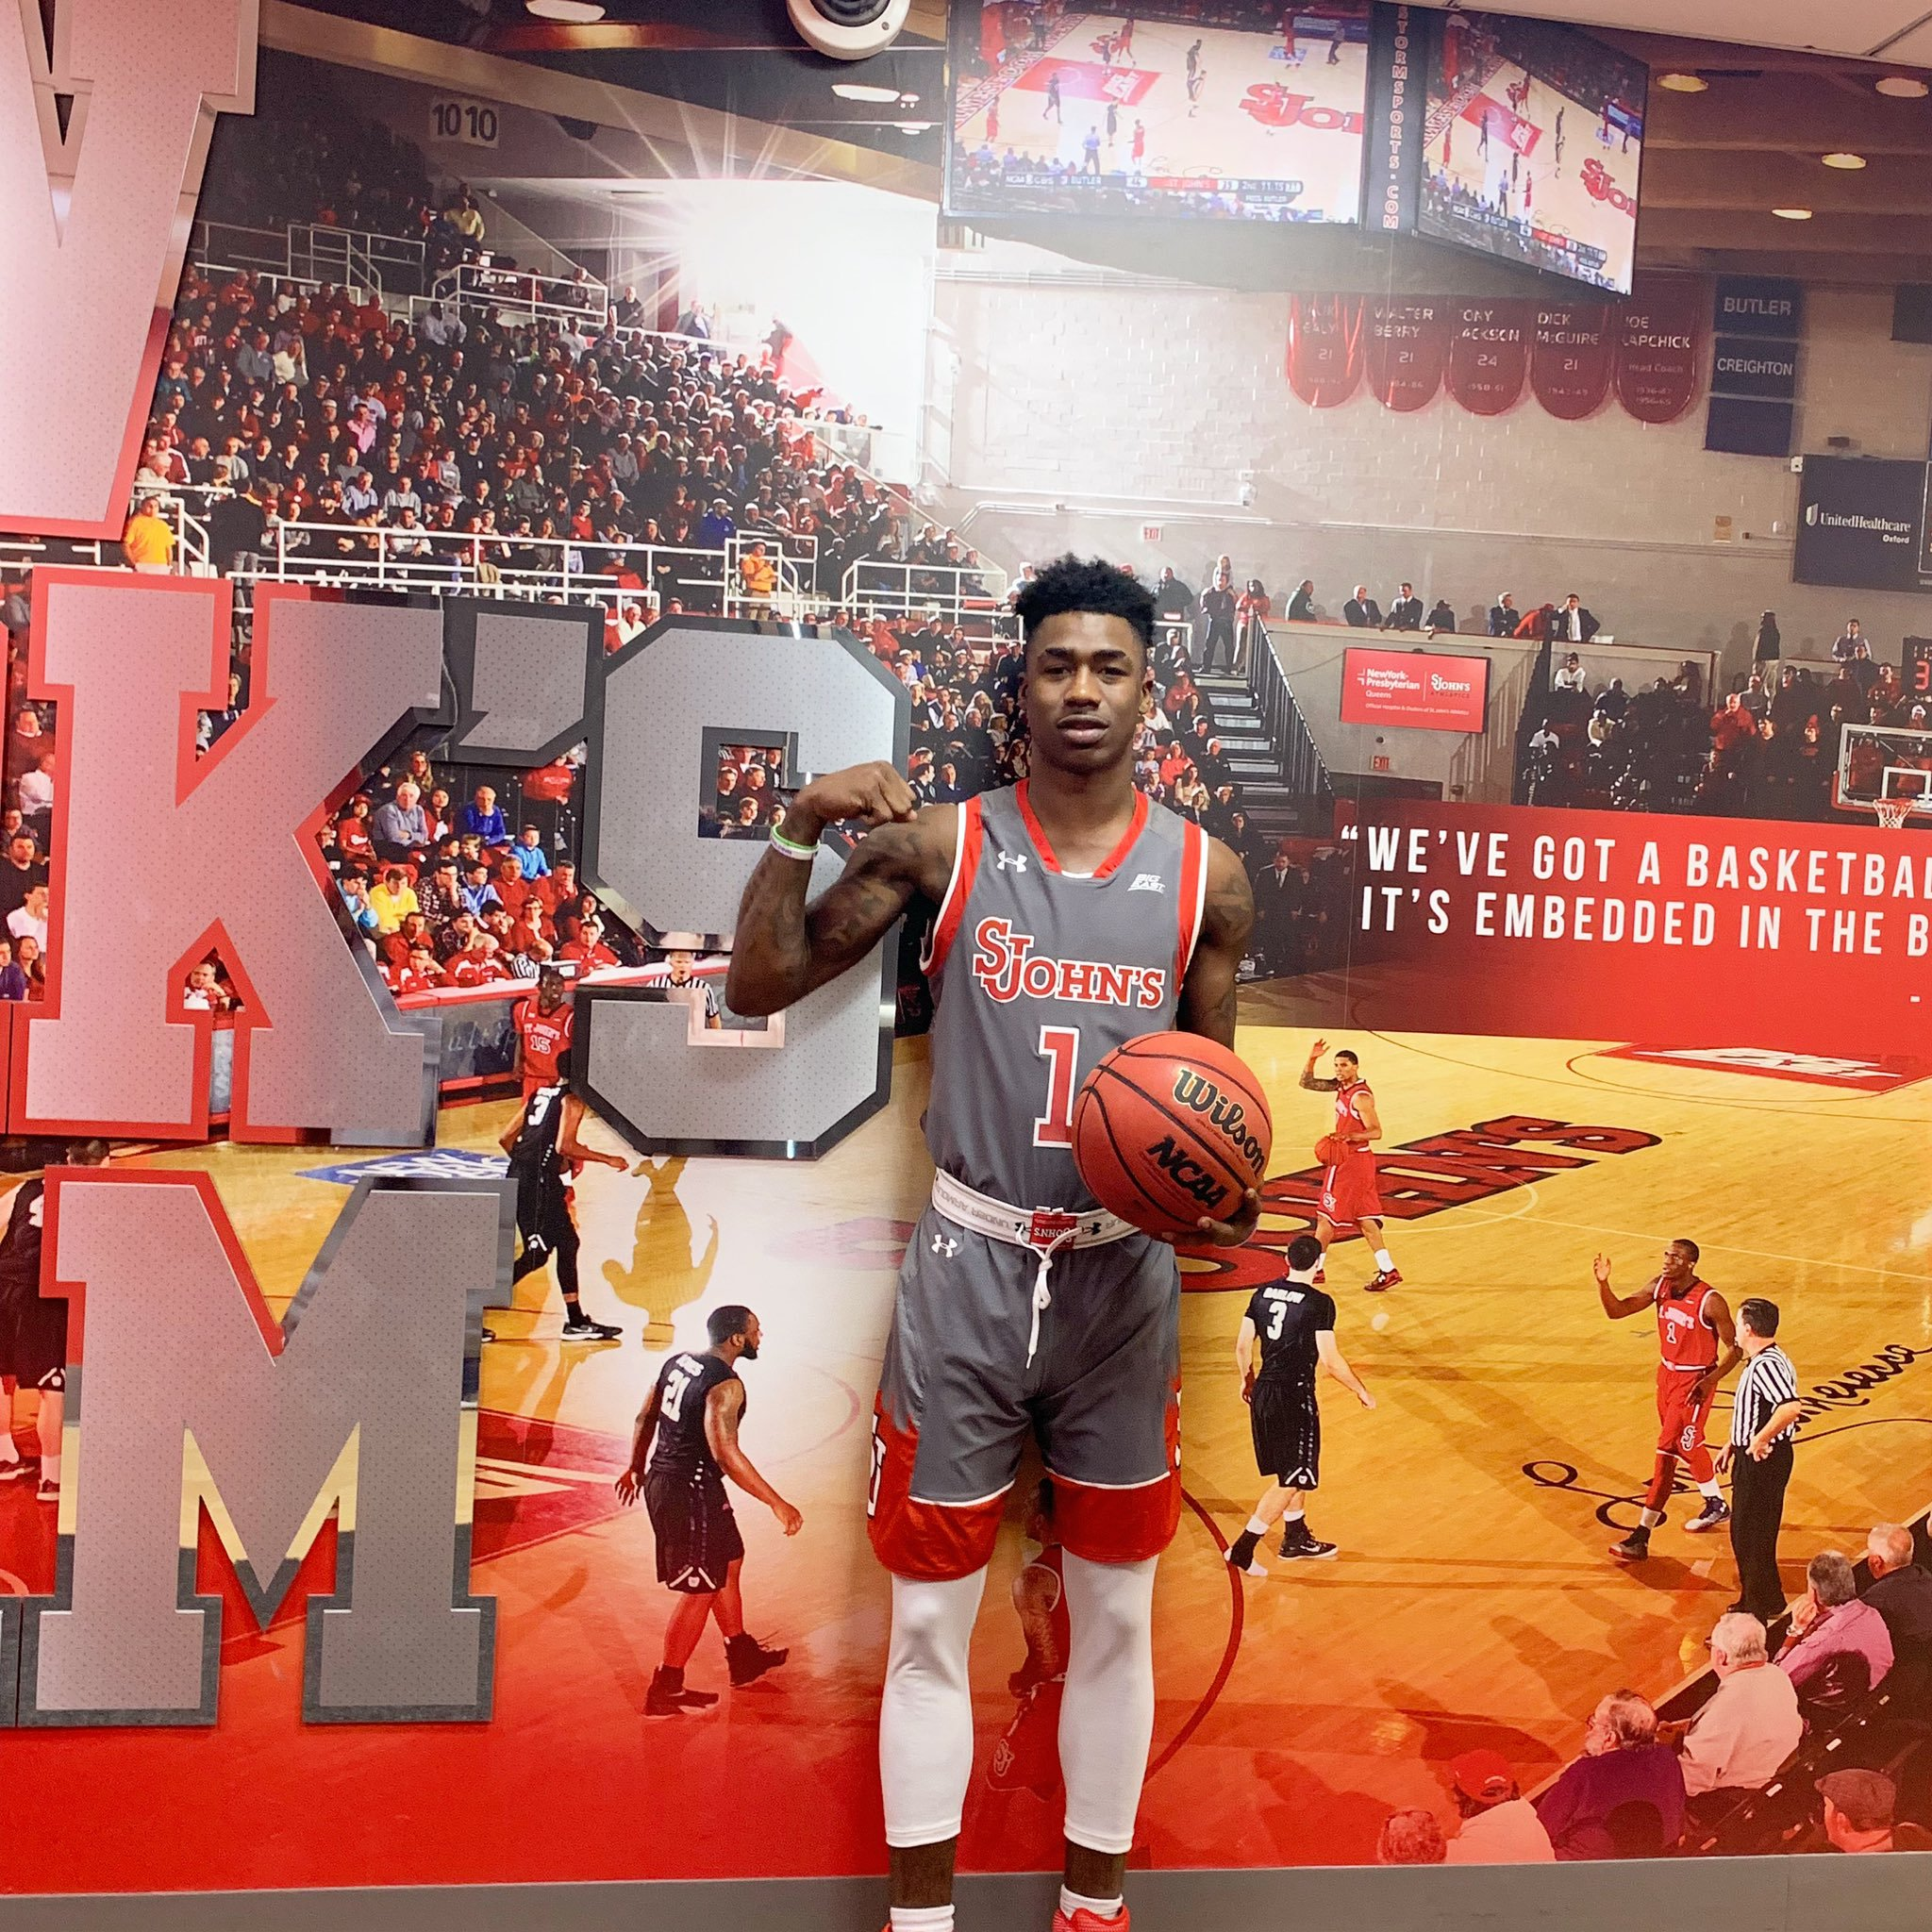 Cameron Mack is ready to arrive at St. John's